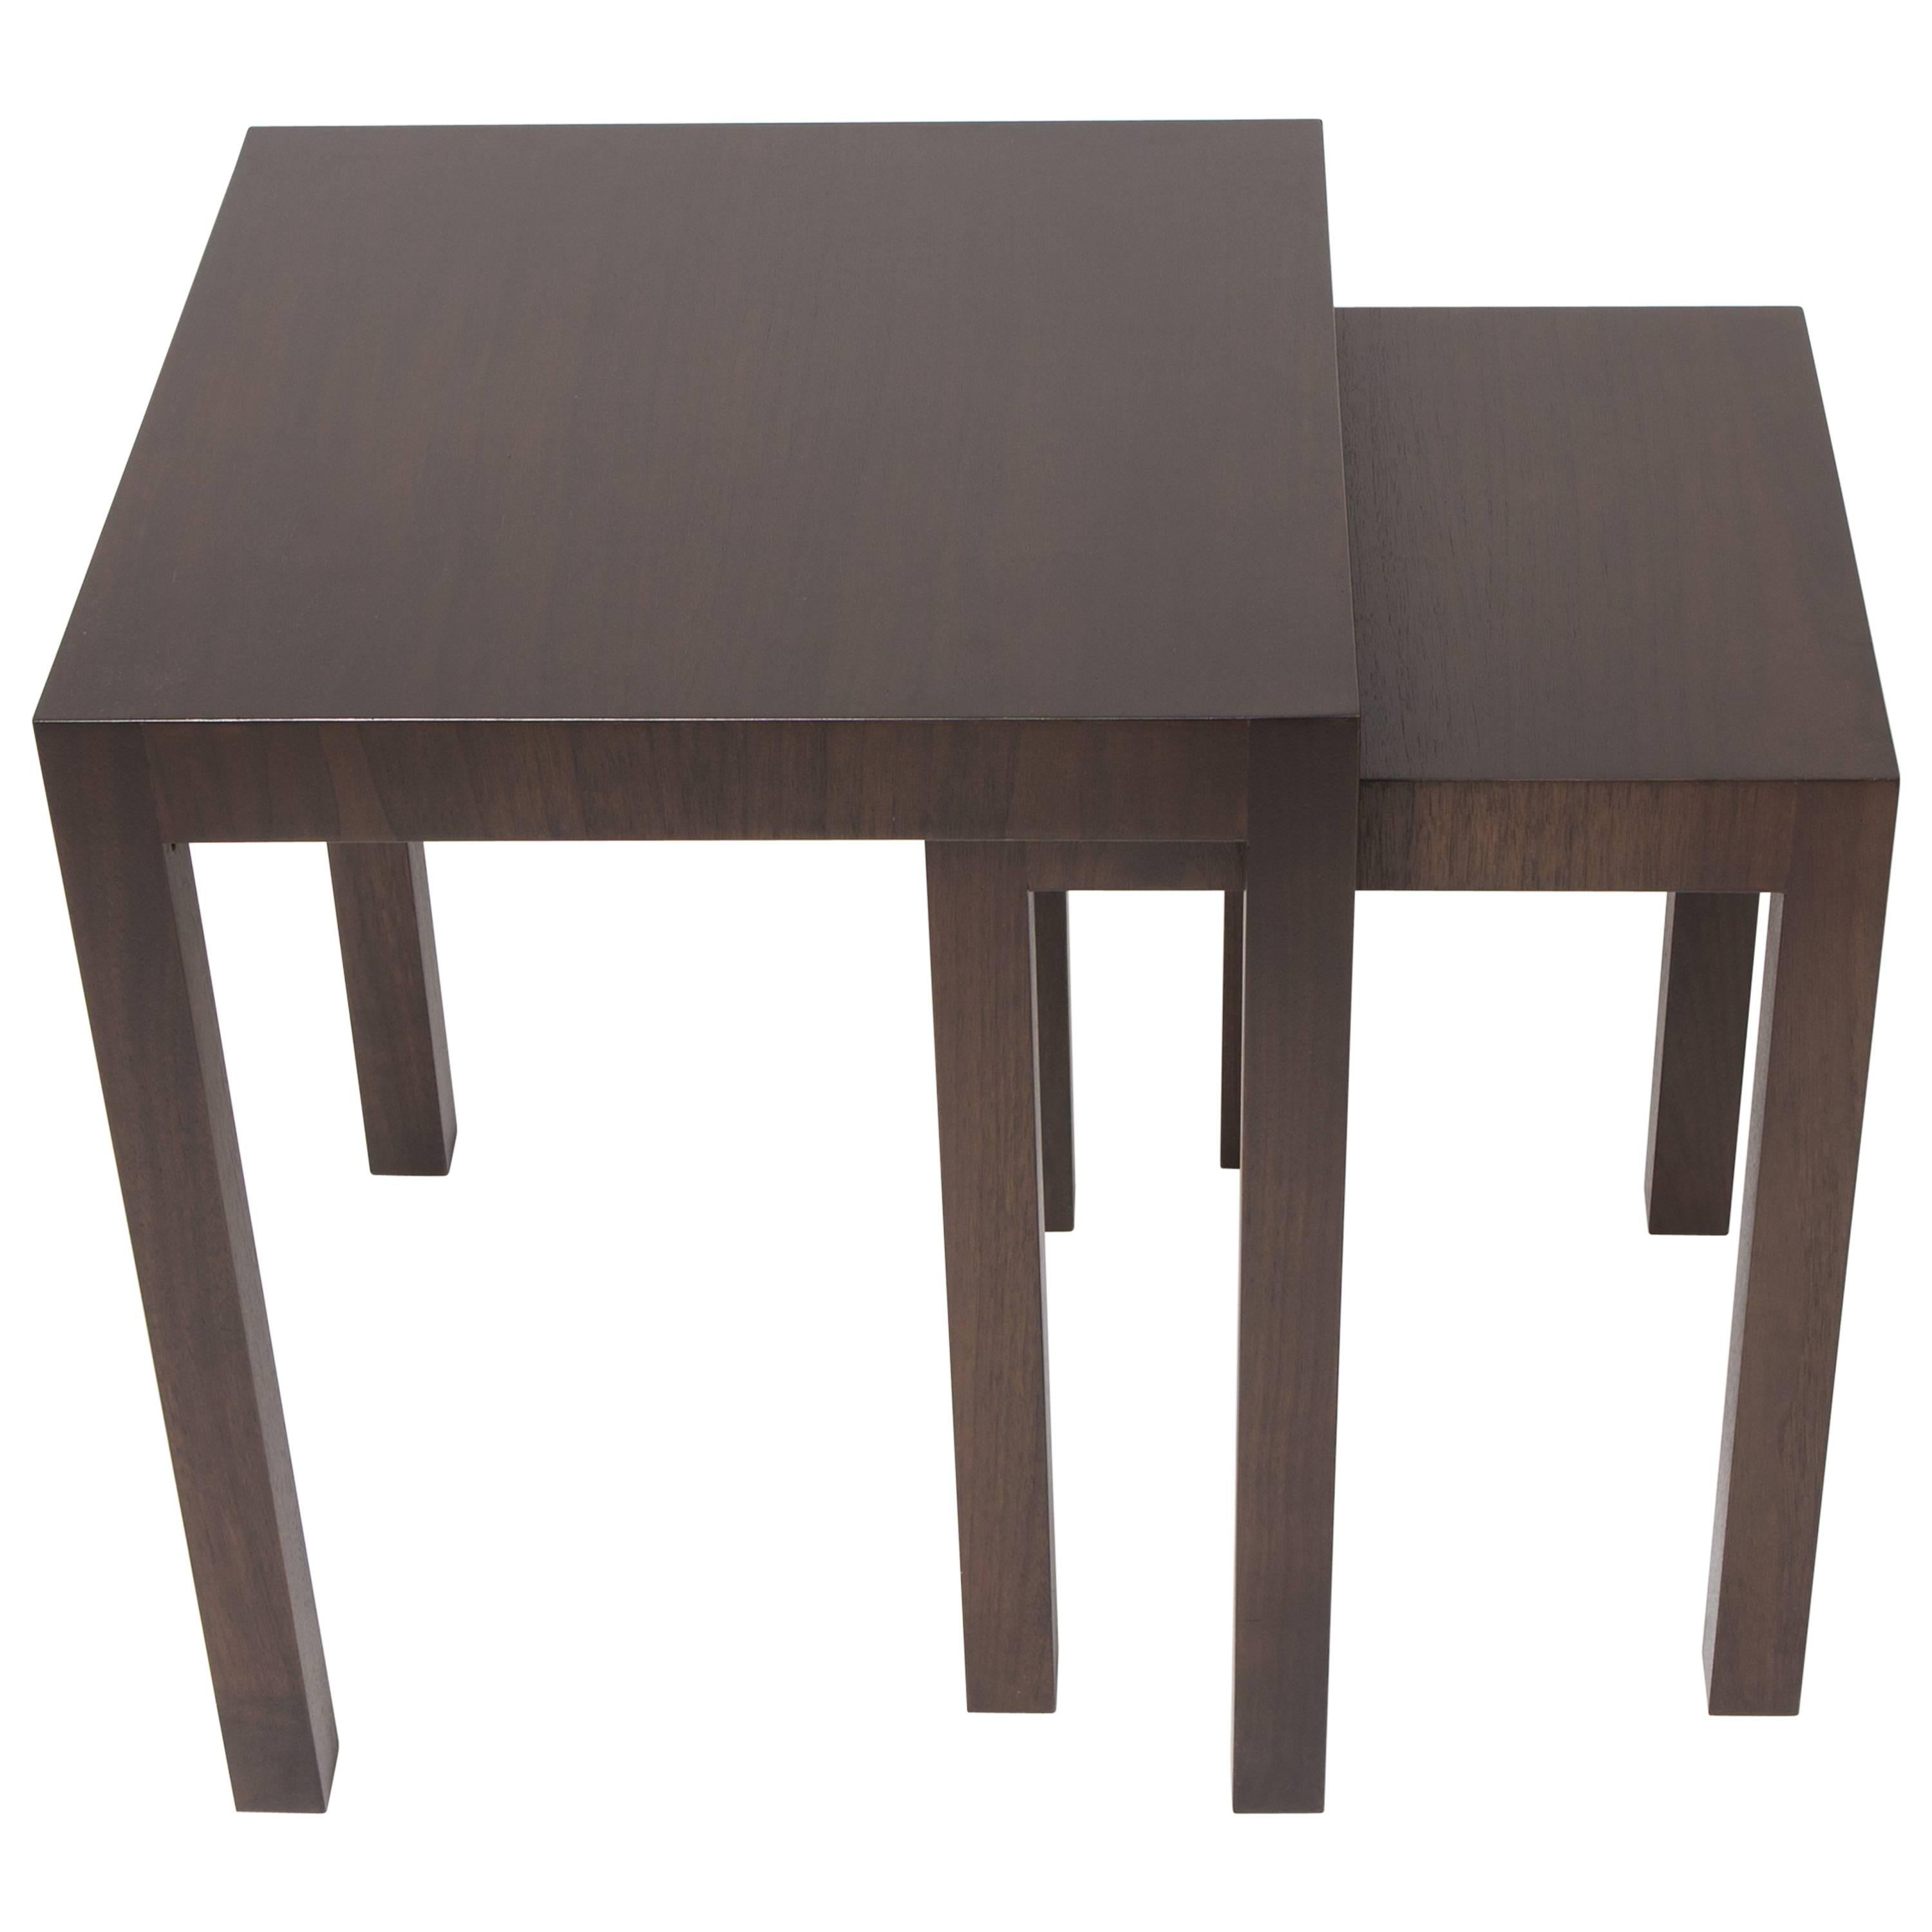 Marvelous ReGeneration Furniture Inc. Two Bespoke Walnut Nesting Tables With Third  Non Nesting Table